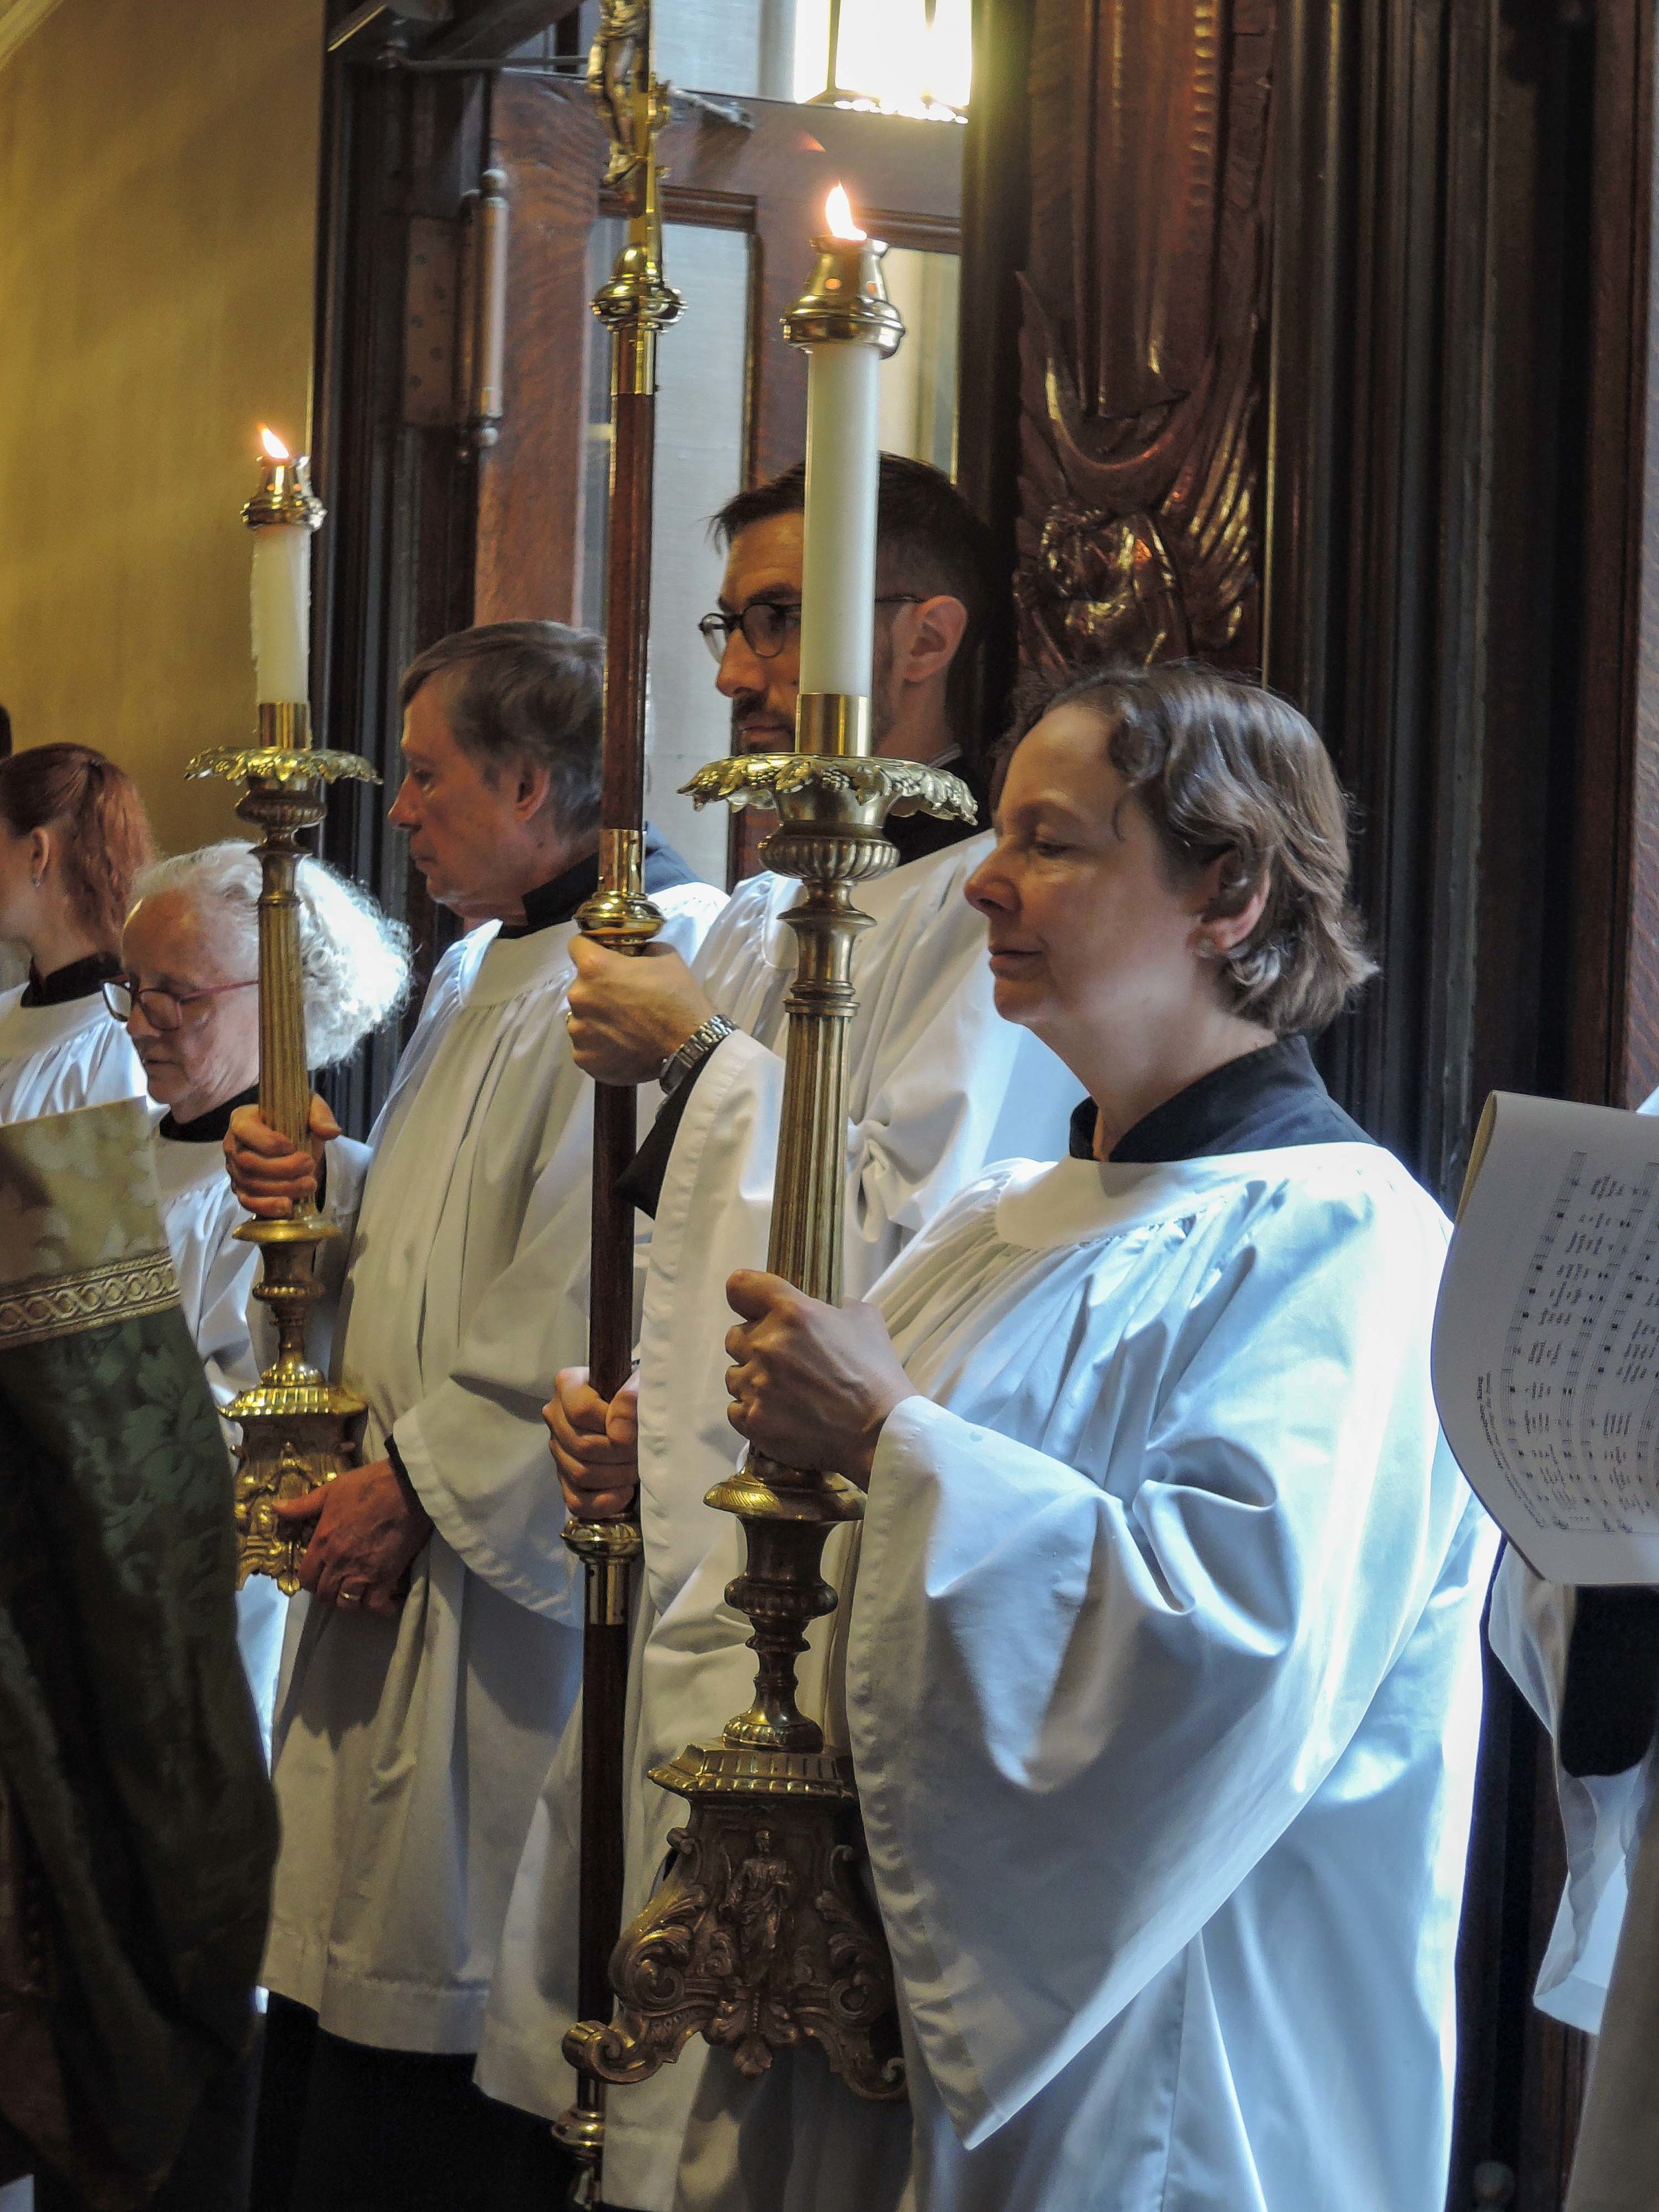 After announcements, the servers and clergy process to the narthex during the final hymn to await the dismissal.